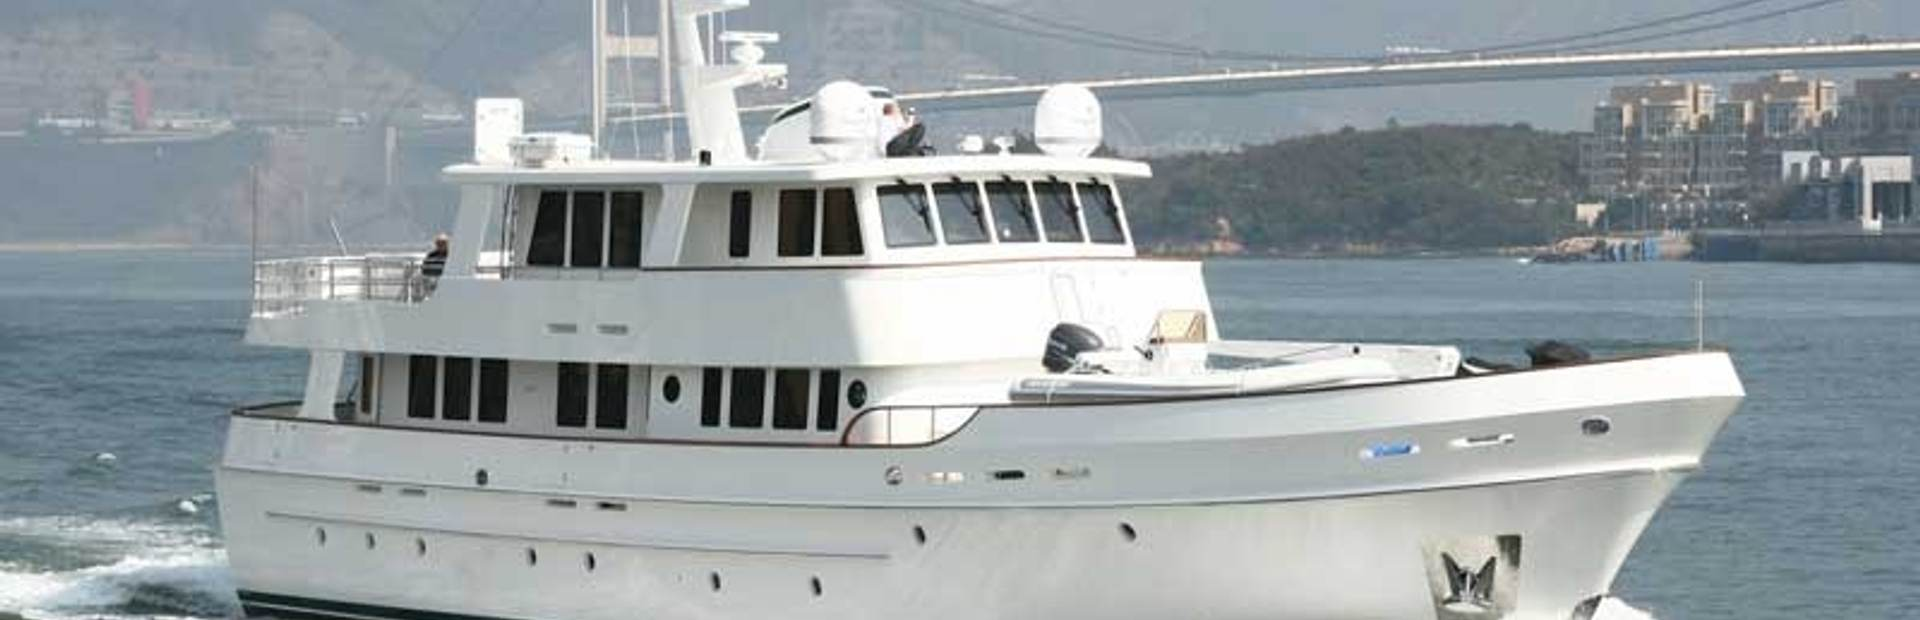 Cheoy Lee Serenity 90 Expedition Yacht Charter